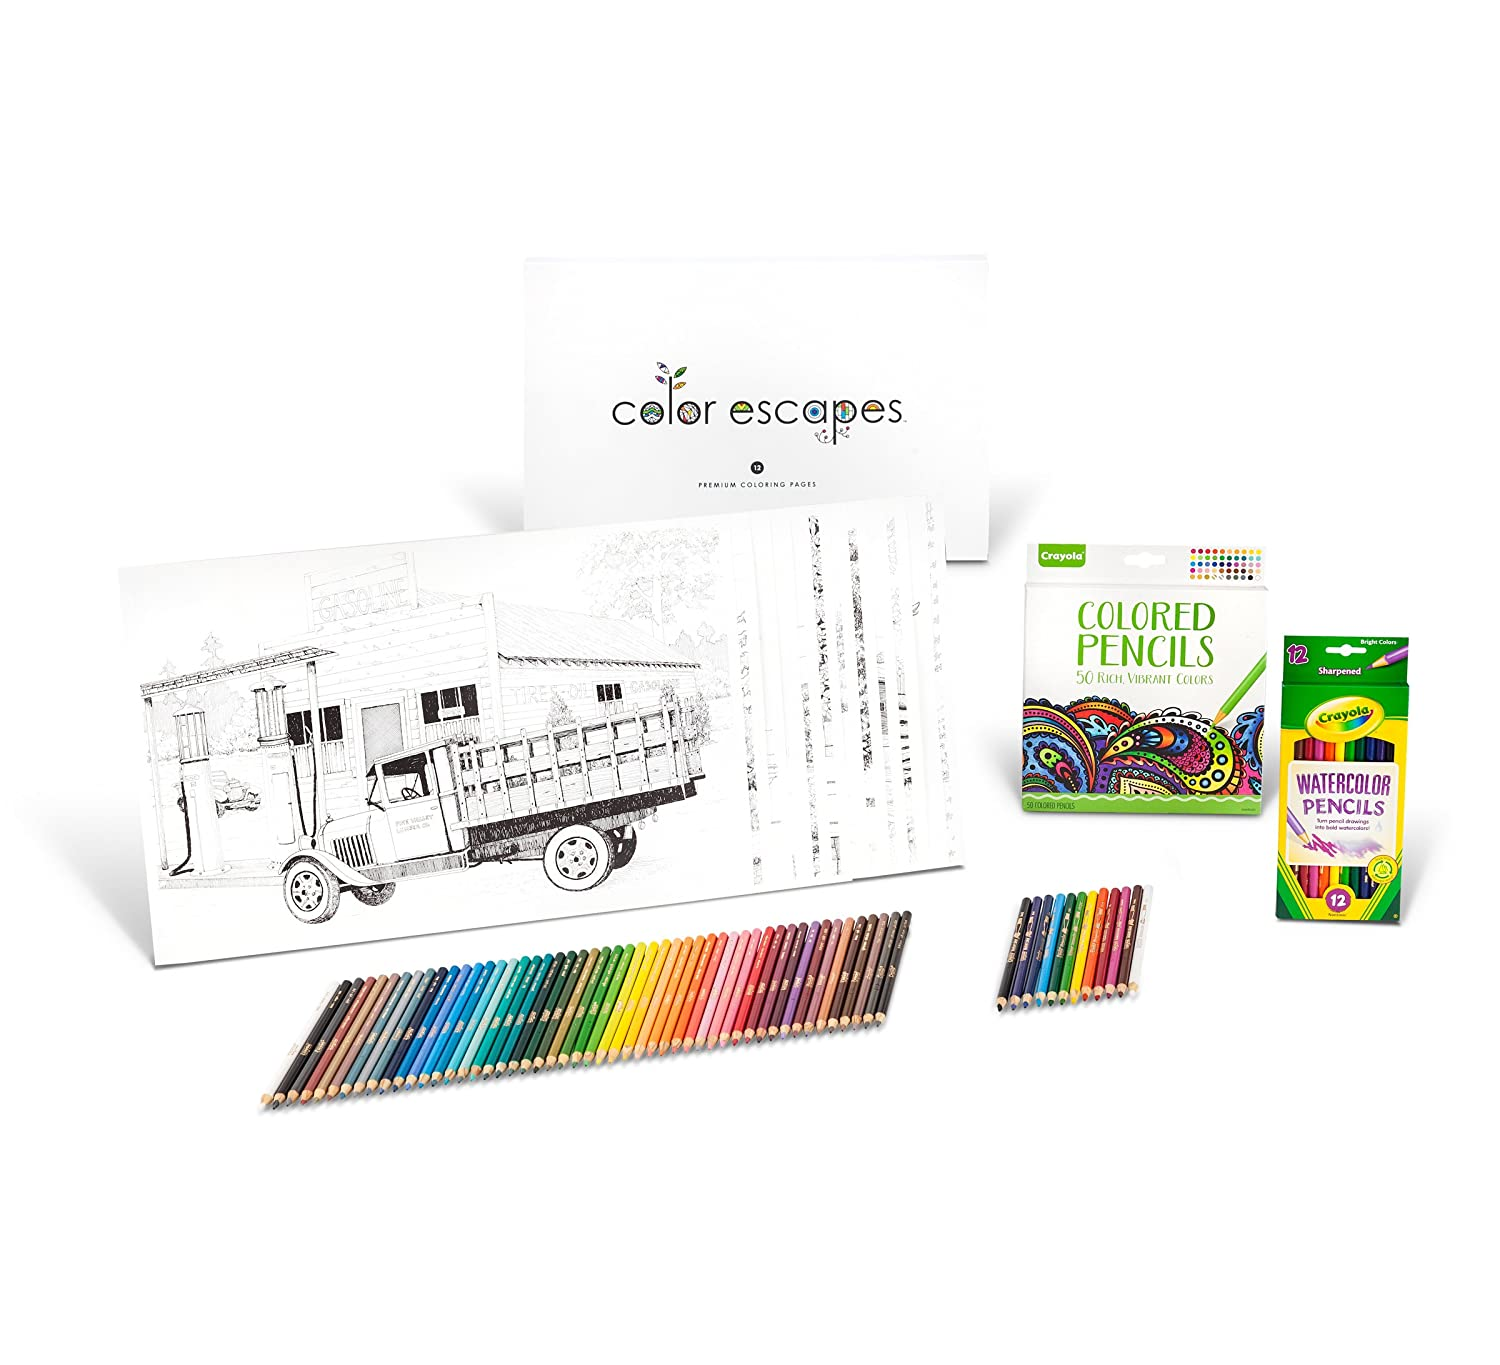 amazoncom crayola color escapes coloring pages pencil kit americana edition 12 premium pages 12 watercolor pencils 50 colored pencils